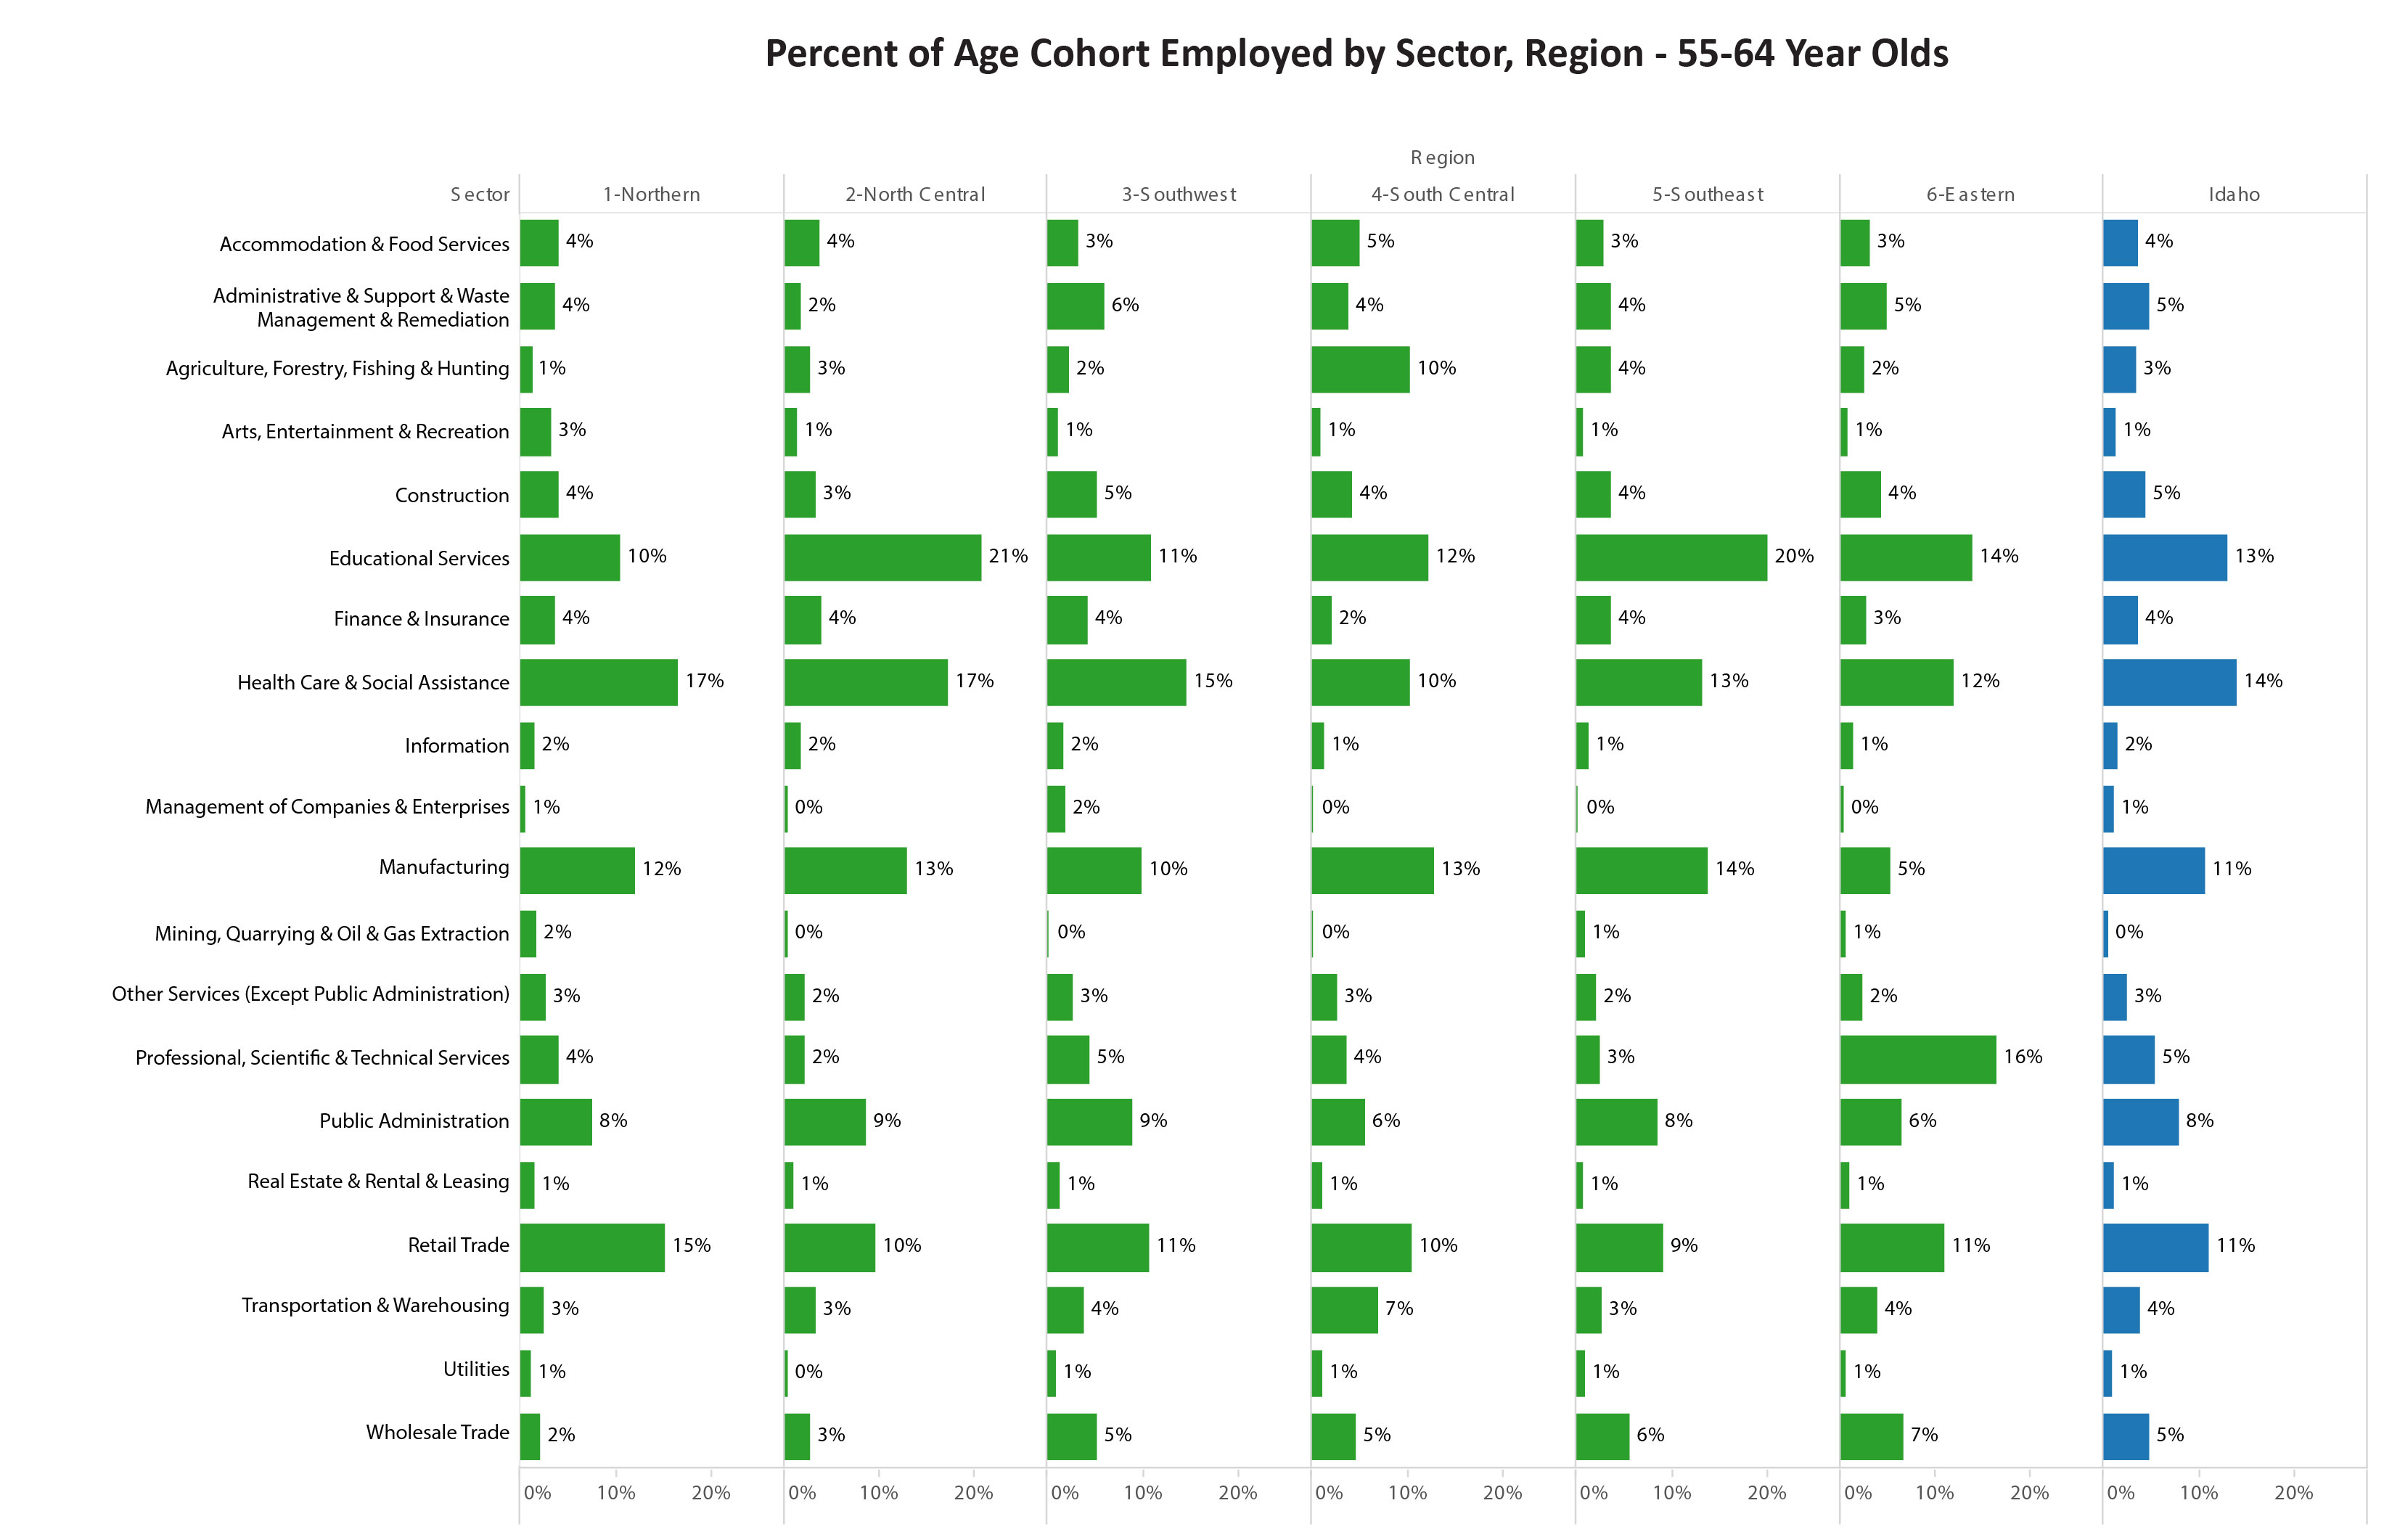 ages and wages affect idaho s future workforce capacity idaho work the difference is older workers are concentrated in education services instead of accommodations and food services the fourth high concentration sector for